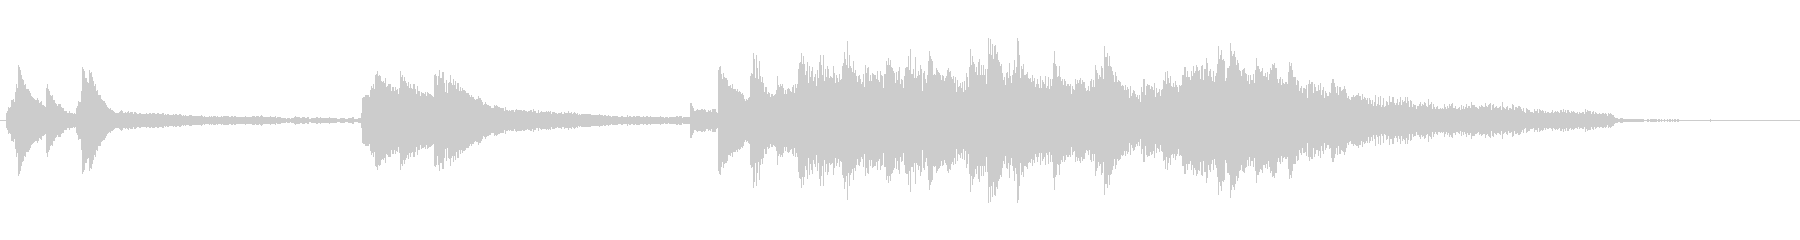 Piano jingle with a fresh atmosphere's unreproduced waveform